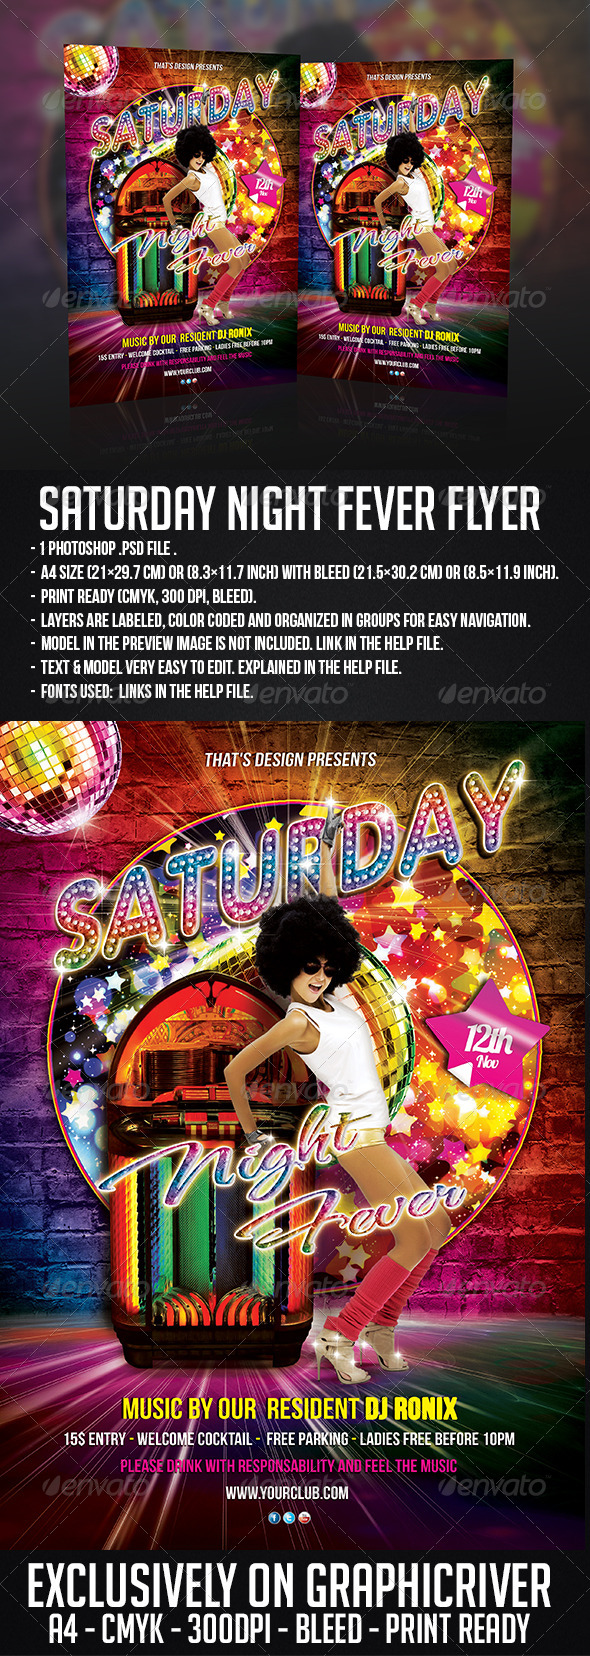 GraphicRiver Saturday Night Fever Flyer Template 6206813